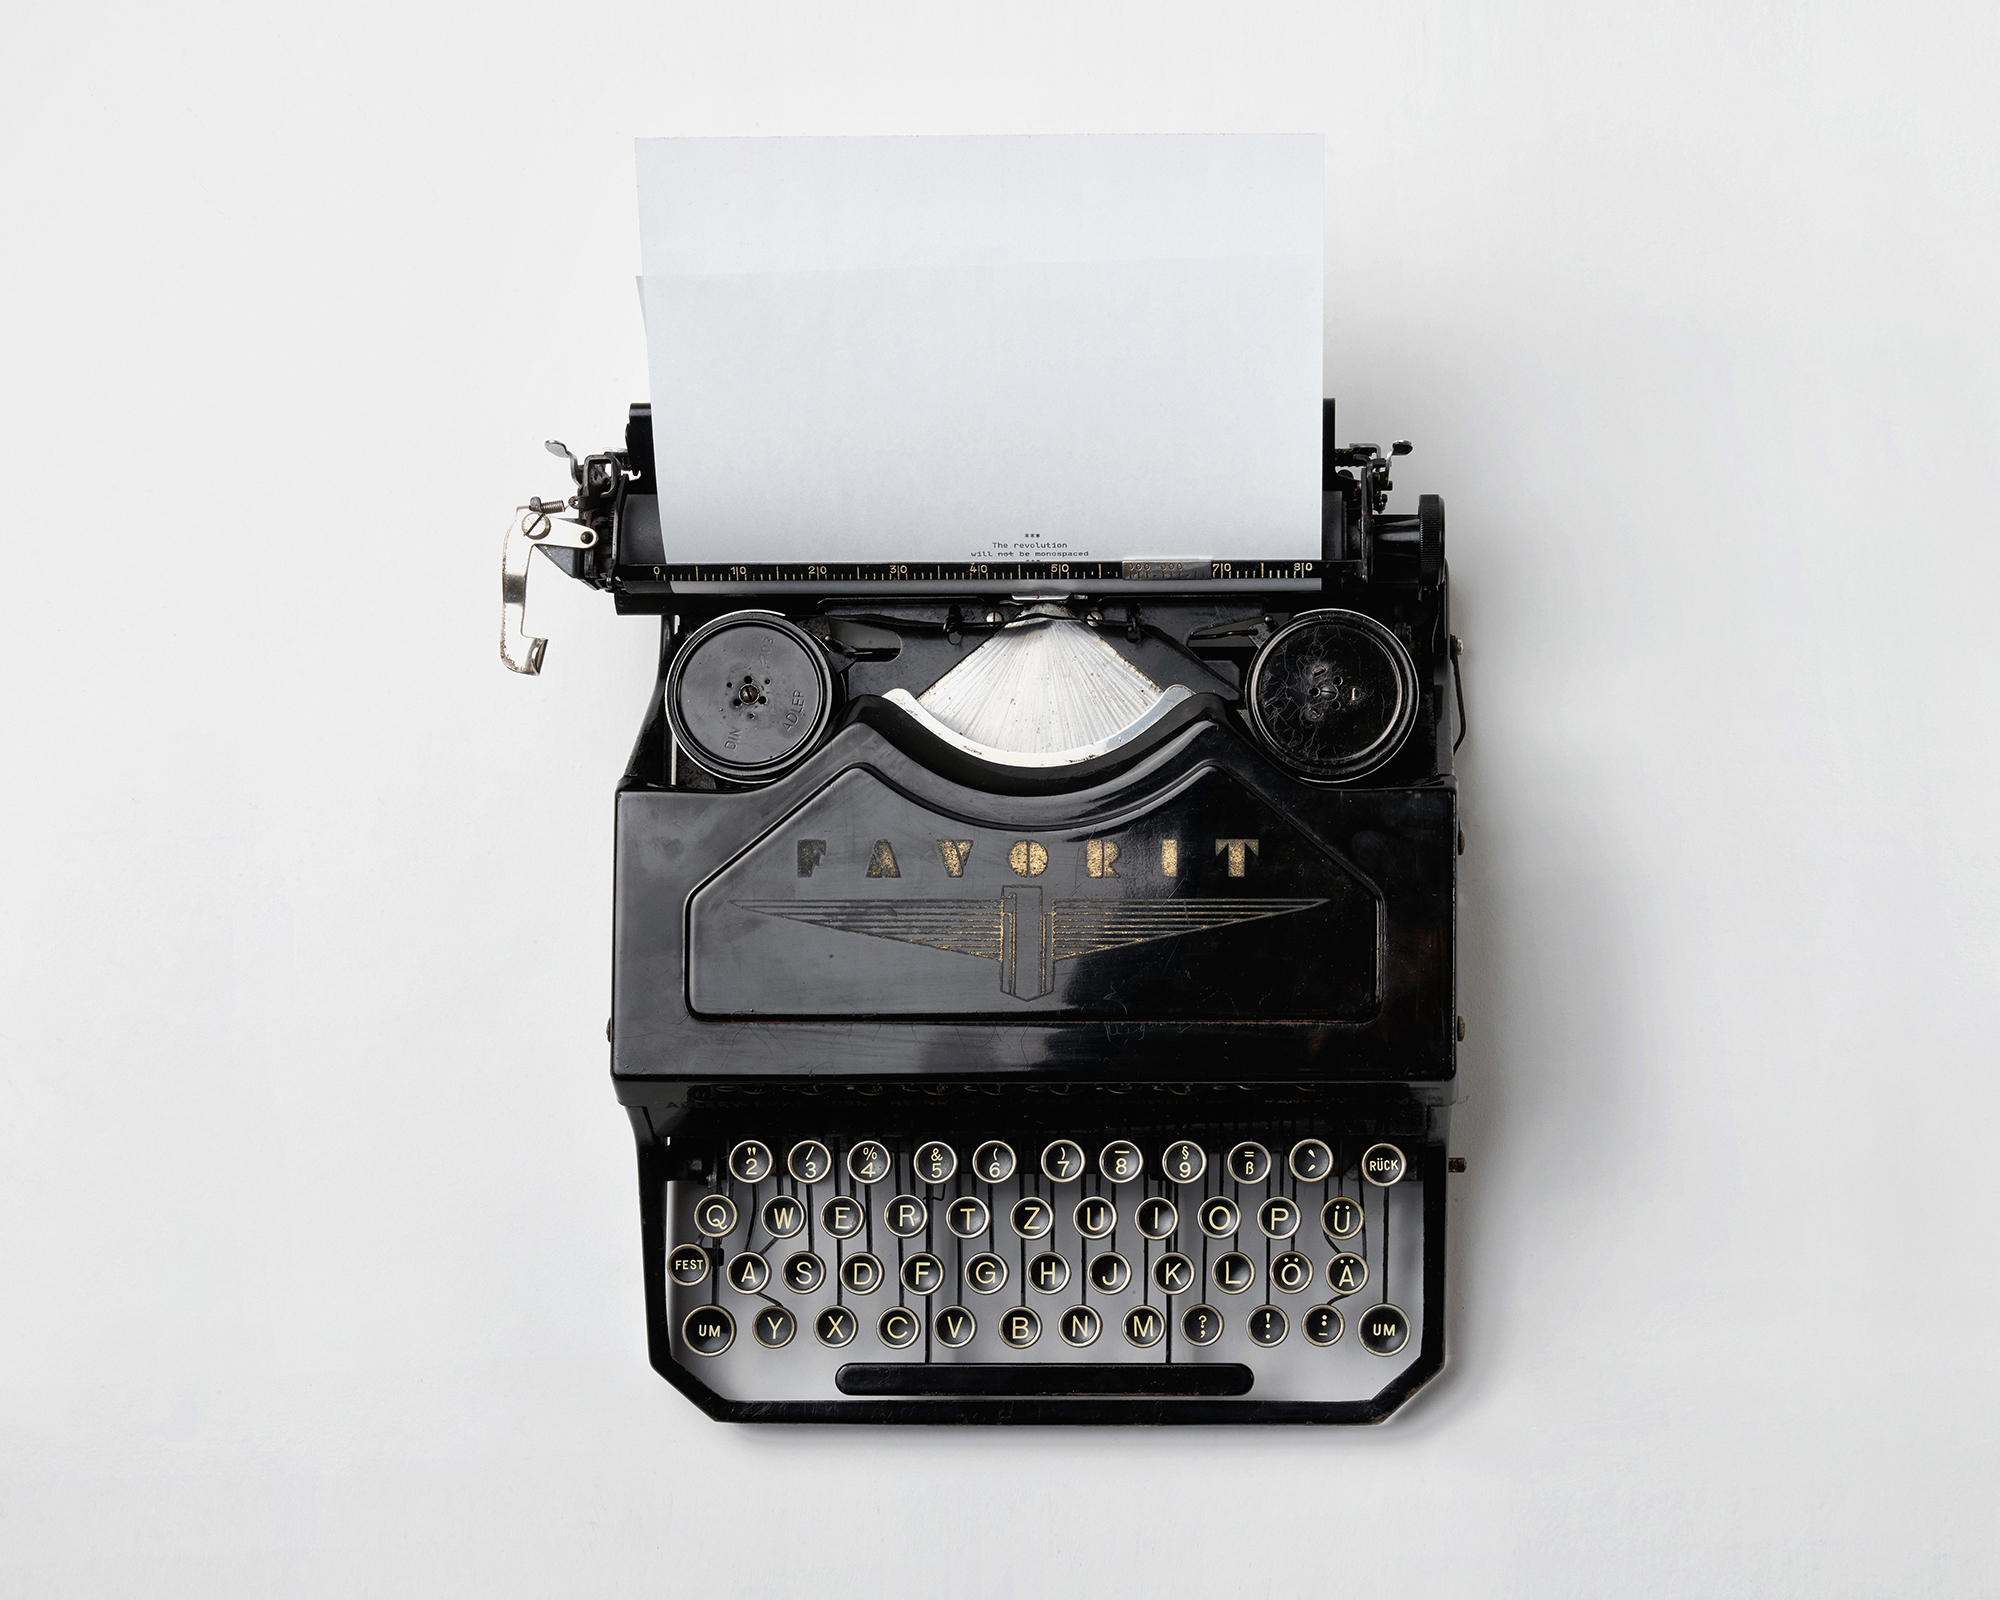 4 Crucial Steps to Write & Publish Your First (or Next) Book